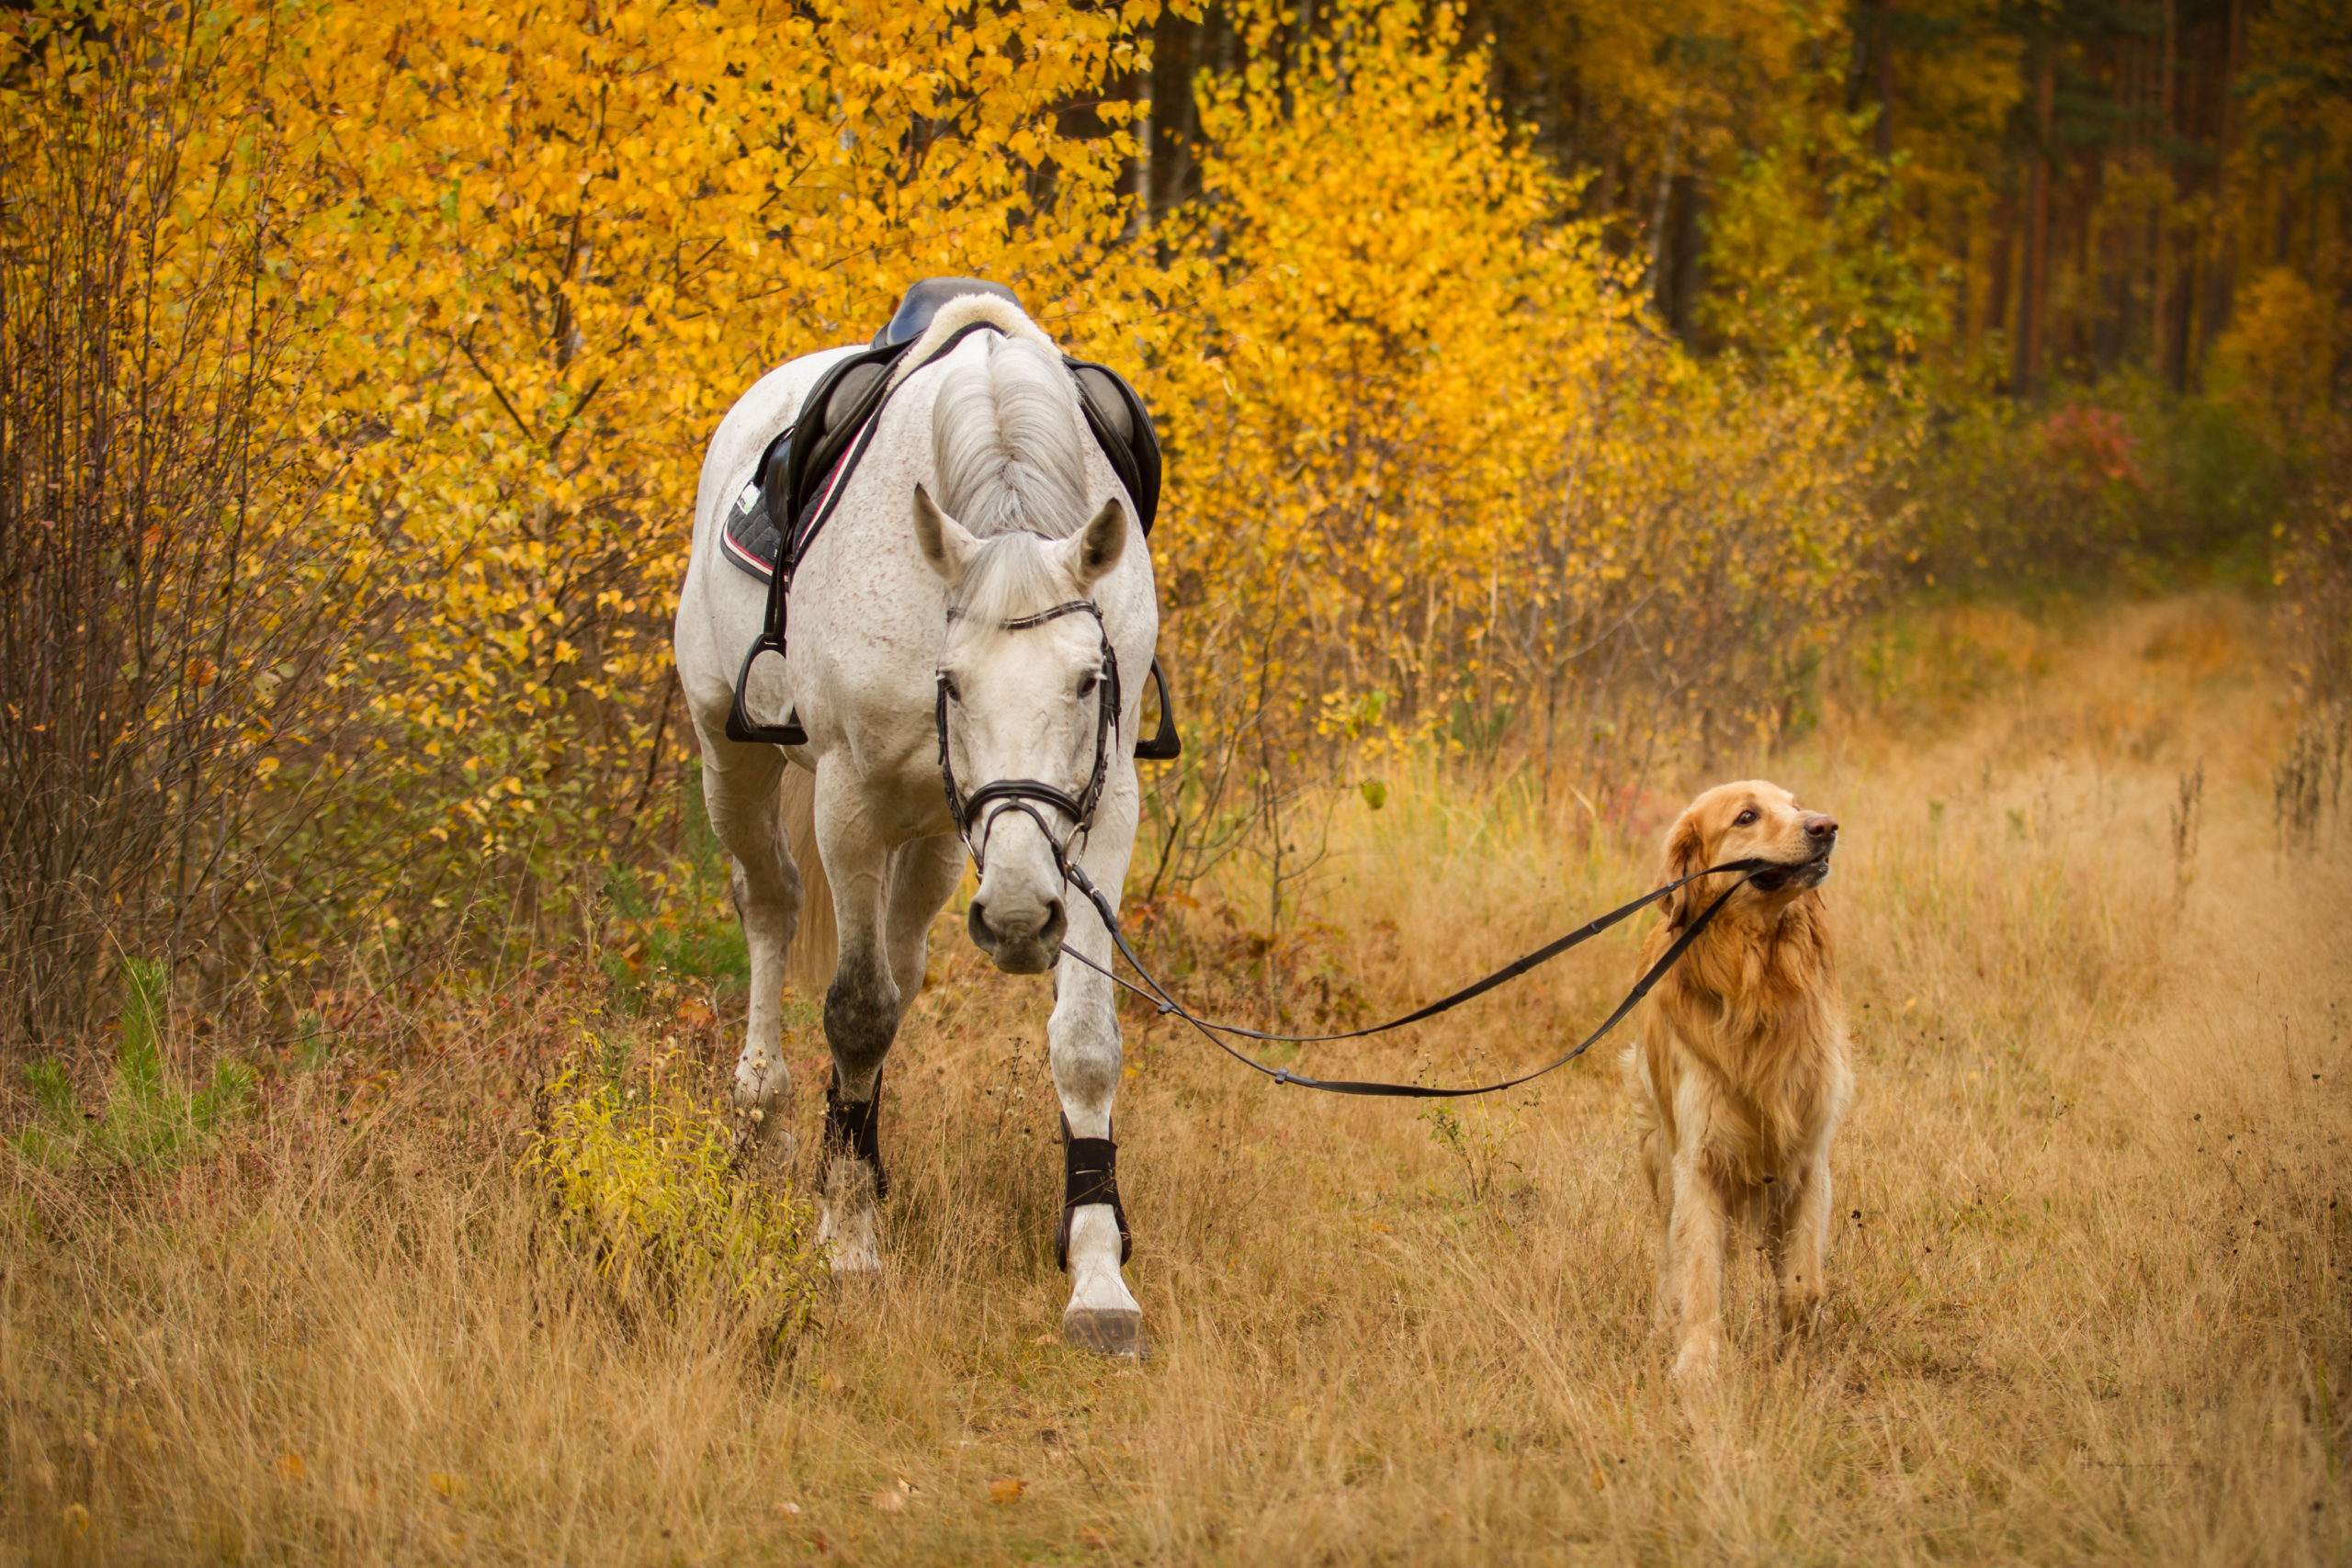 AskHQ: Is a horse smarter than a dog?